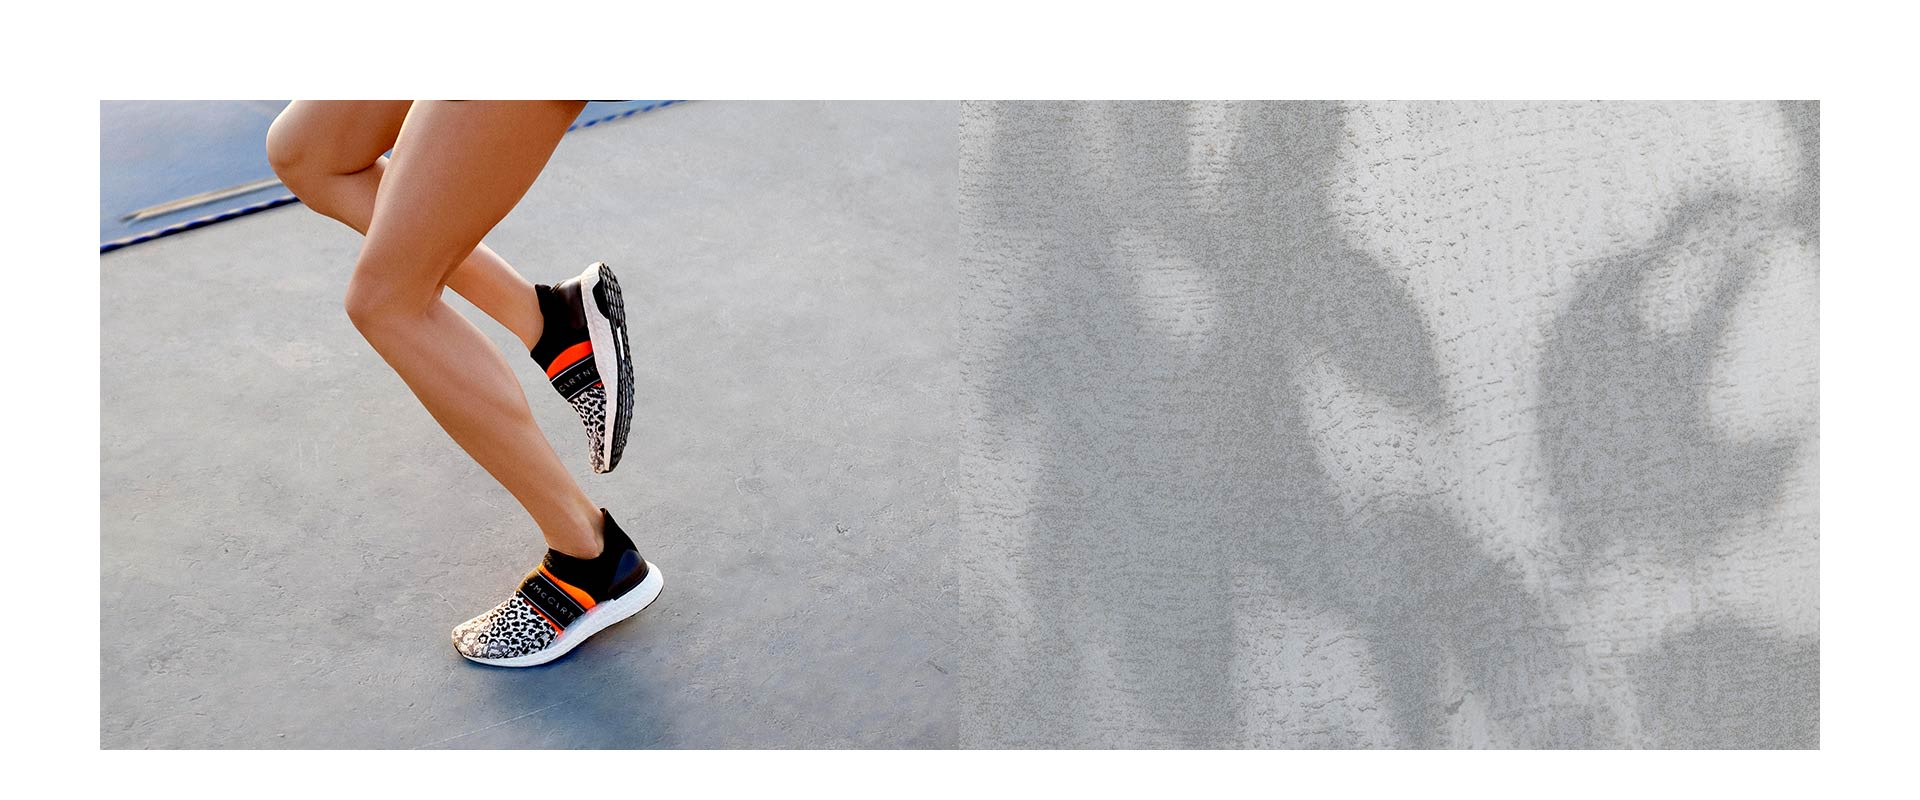 d7cc57865693 CHANGE CREATORS. Run like never before with the new adidas by Stella  McCartney ...